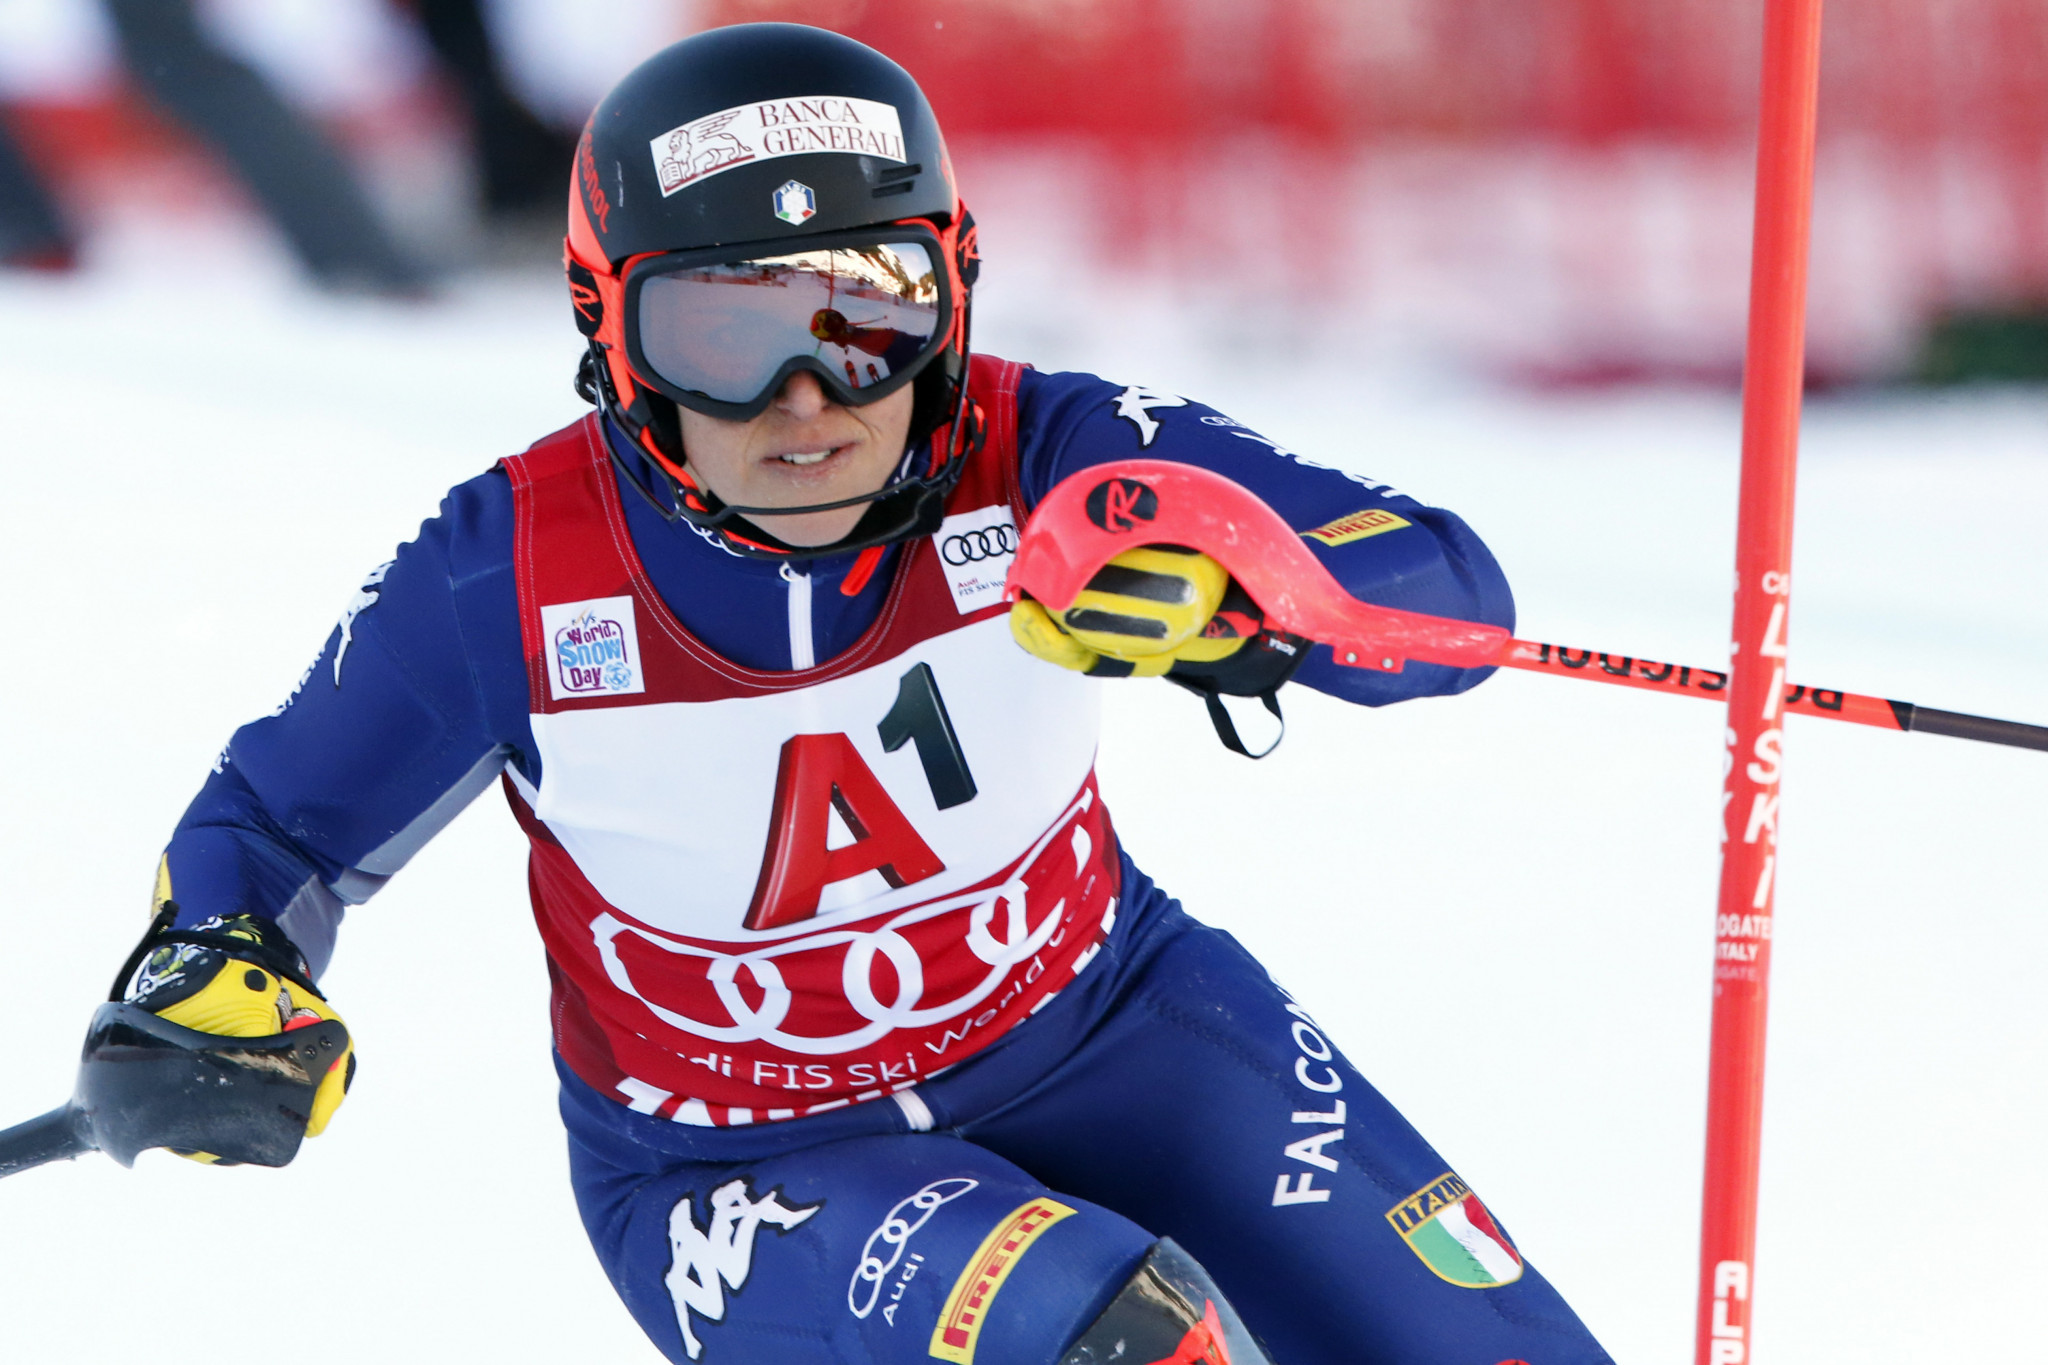 Brignone takes opening FIS World Cup Alpine combined title after Shiffrin falls